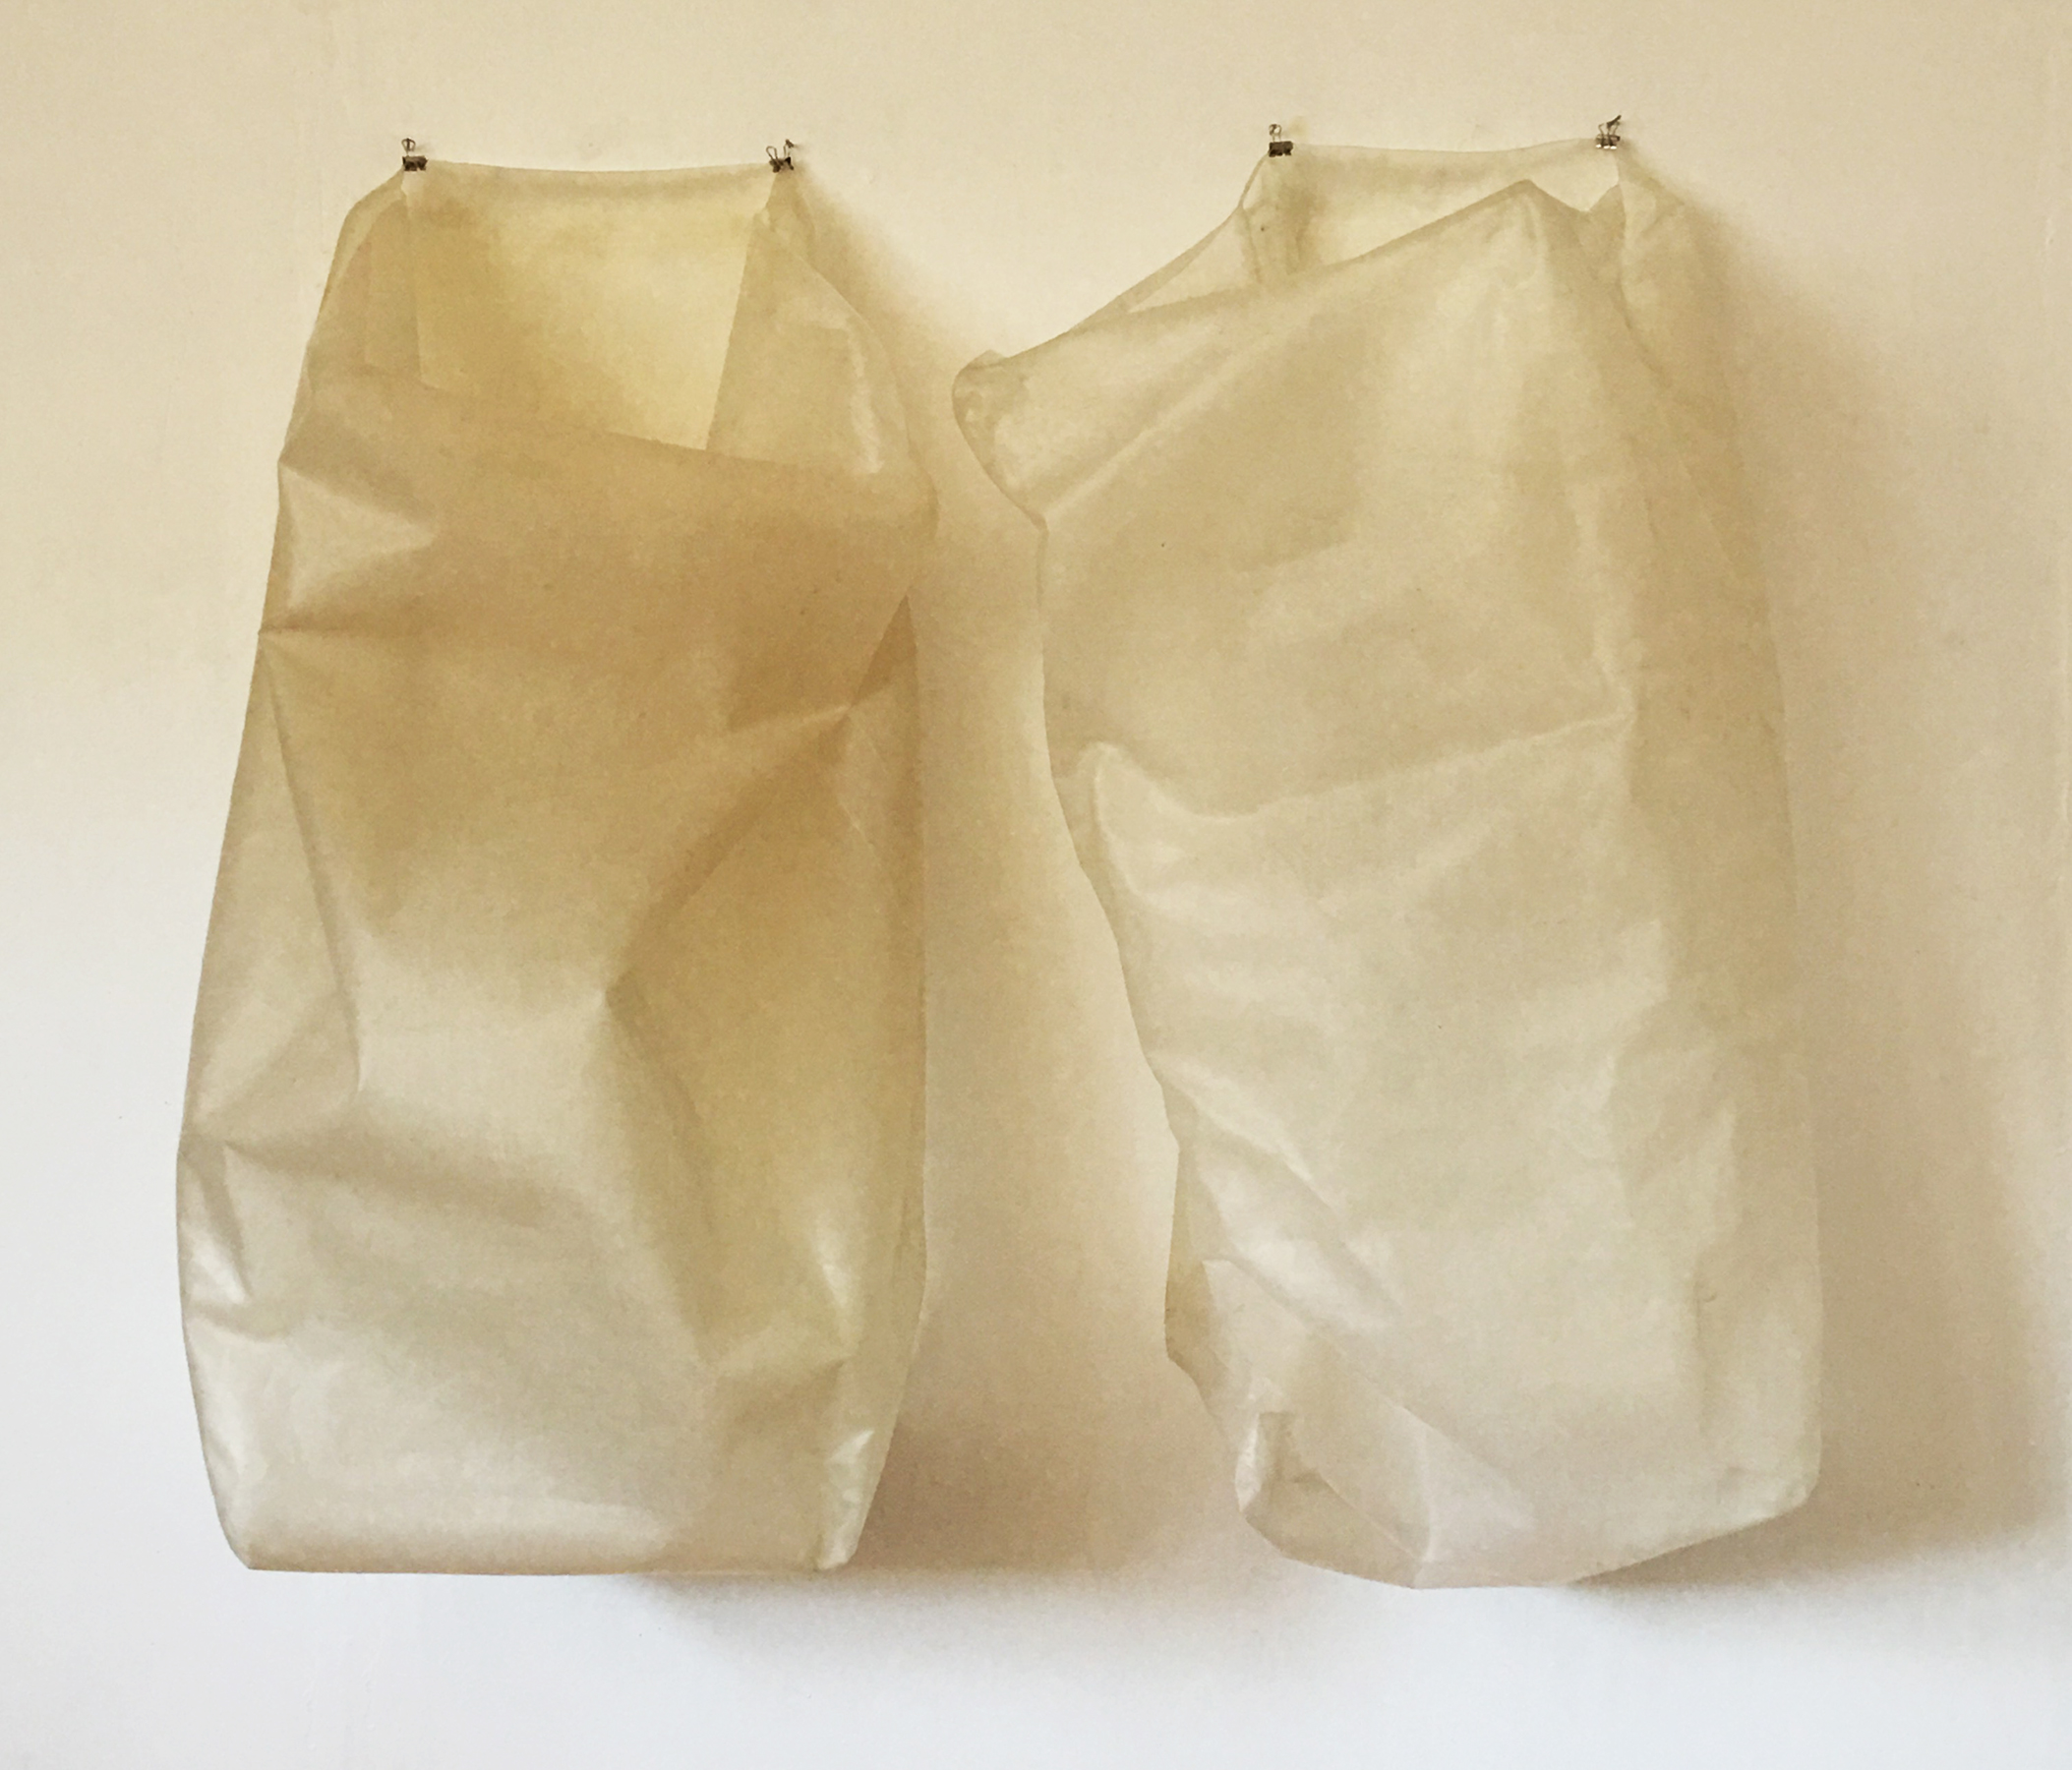 Untitled (sack)